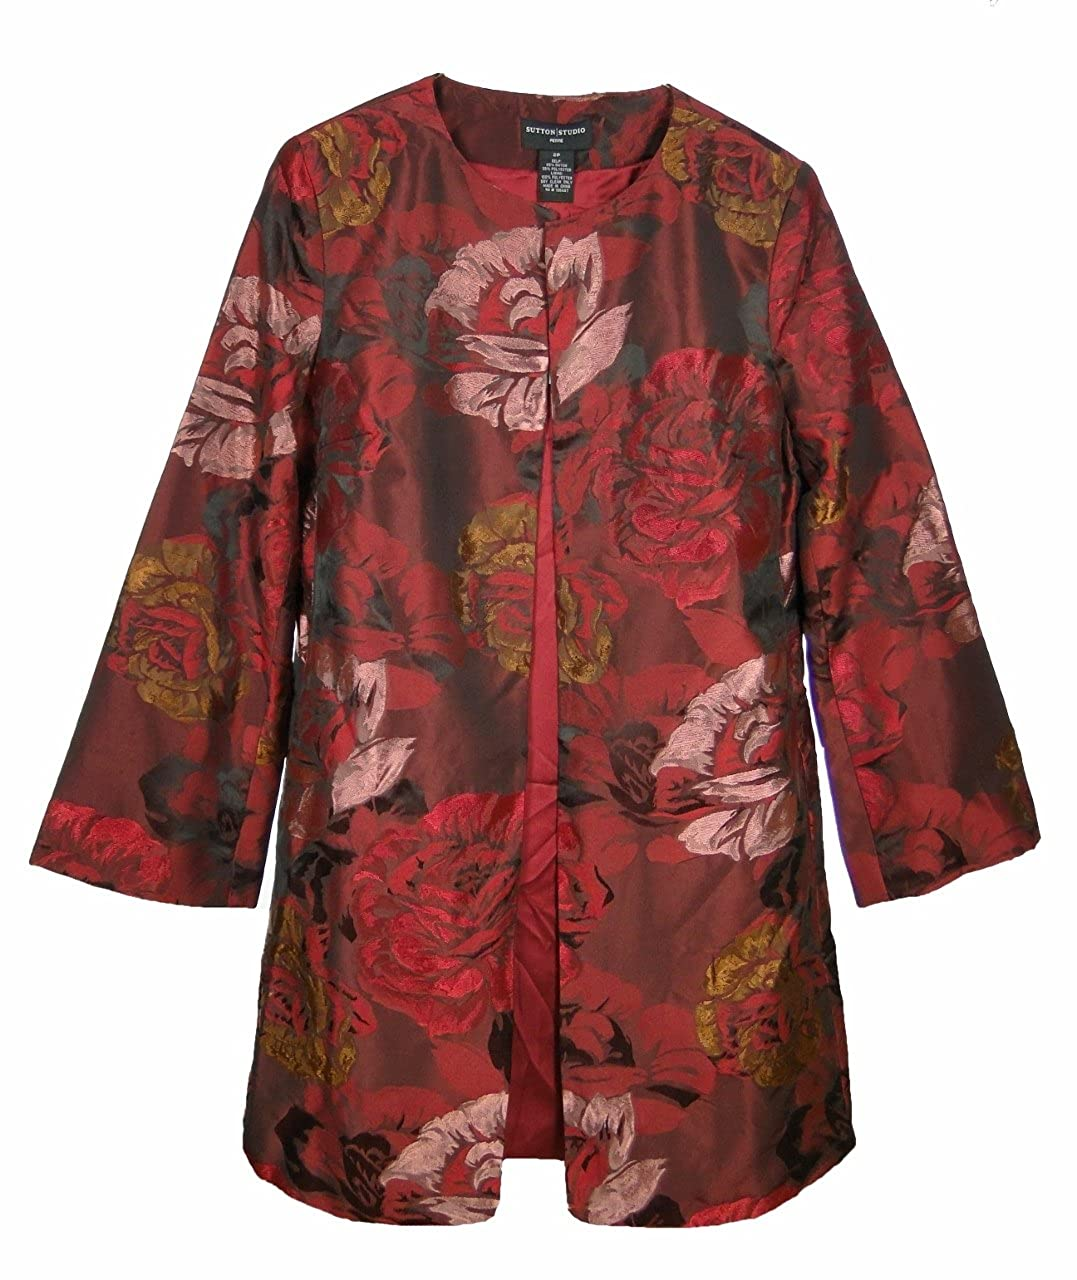 Sutton Studio Women's Red Floral Jacquard Jacket Topper